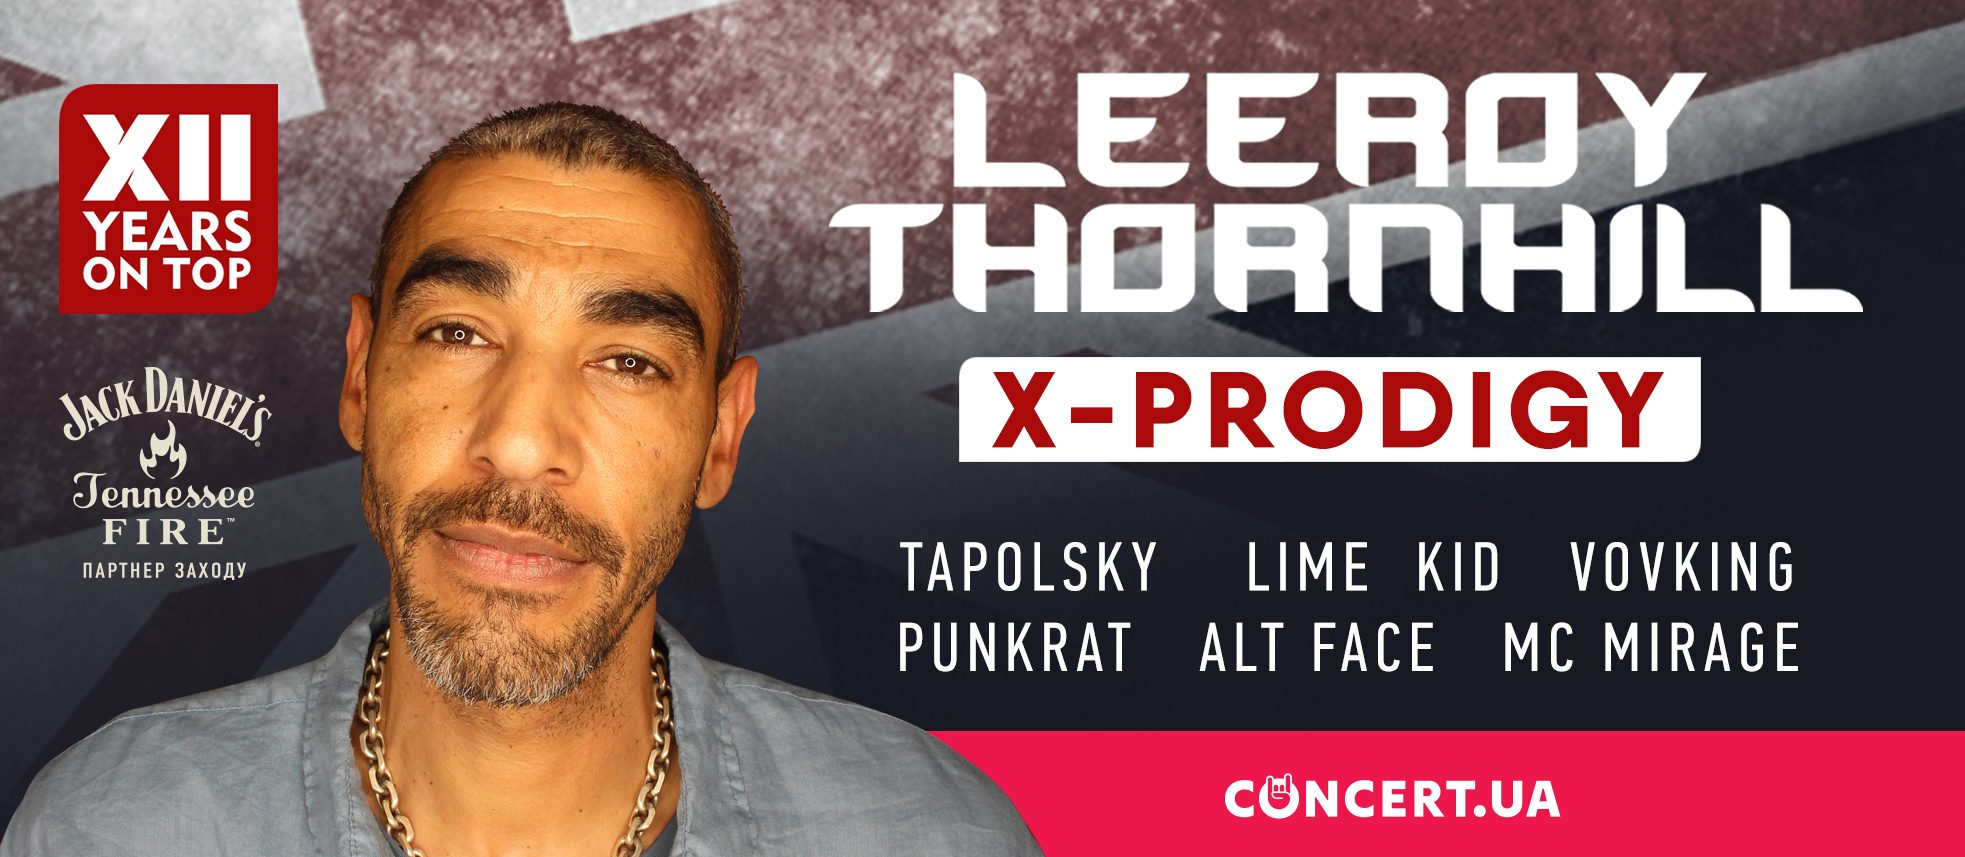 12 Years on top! Leeroy Thornhill (ex-Prodigy), Tapolsky, Lime Kid, VovKing